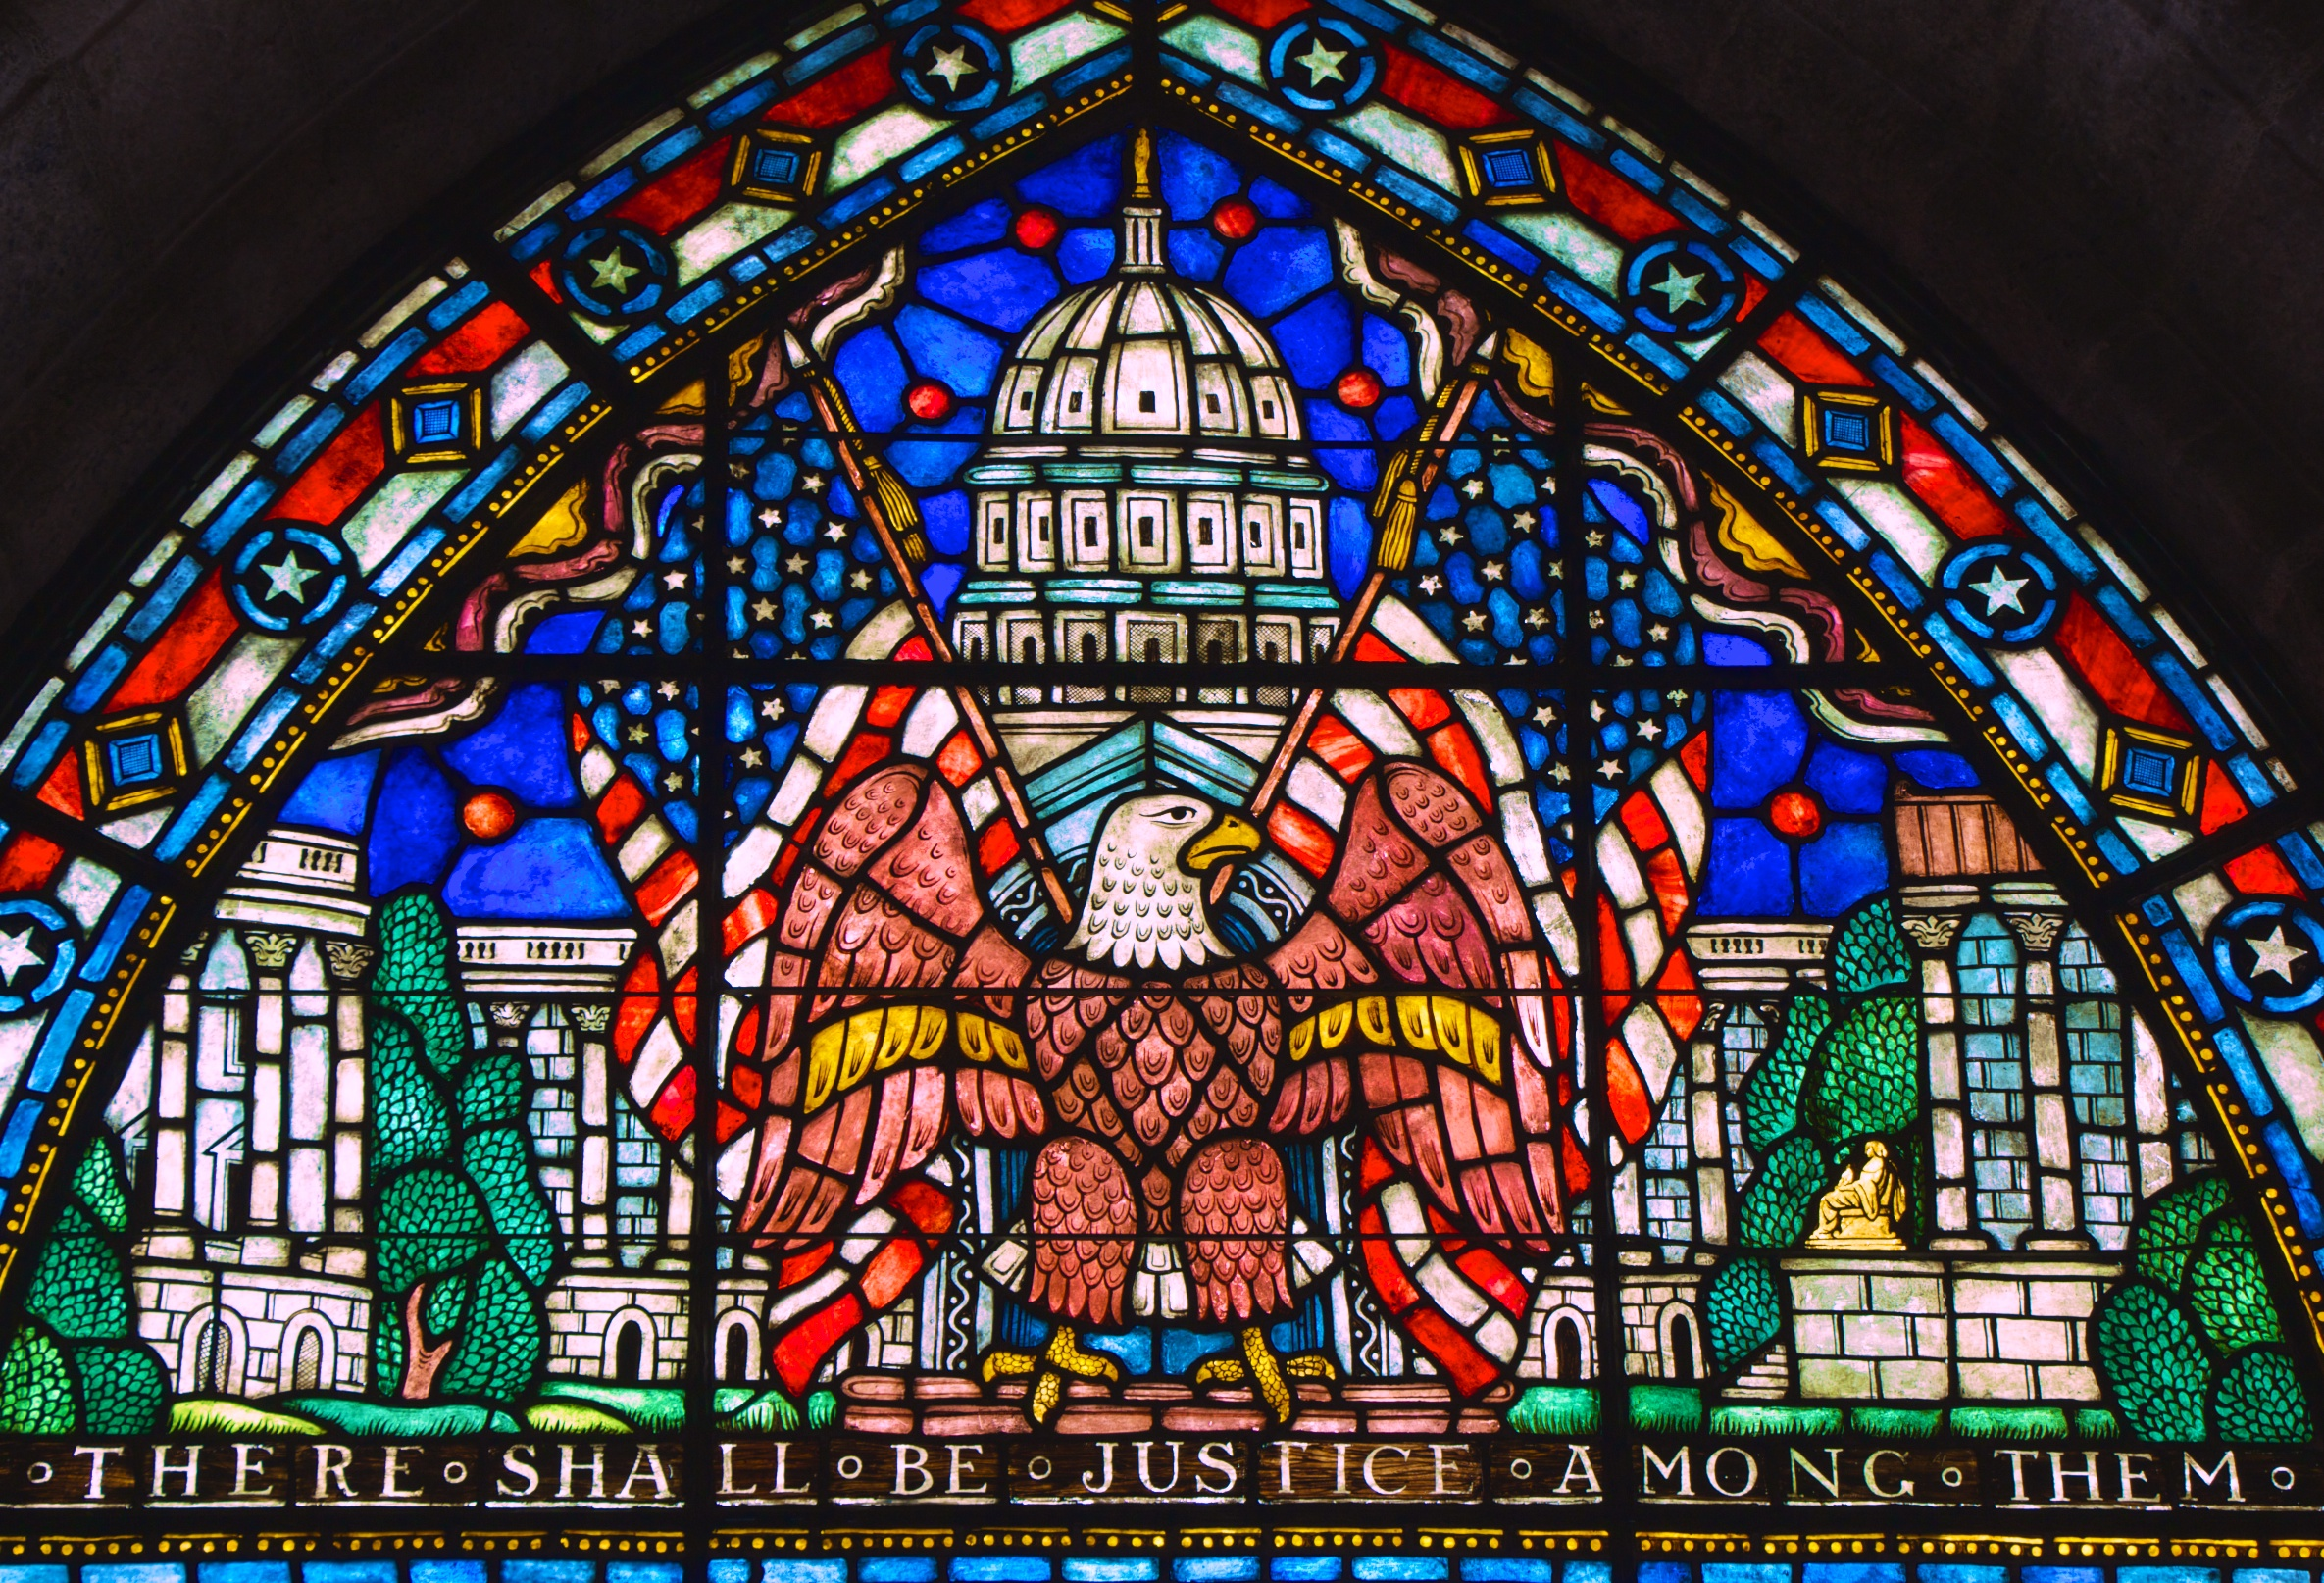 This window in Glencairn's upper hall, made in Bryn Athyn's glass studio and factory, illustrates the balance of power between the branches of the US Federal Government.